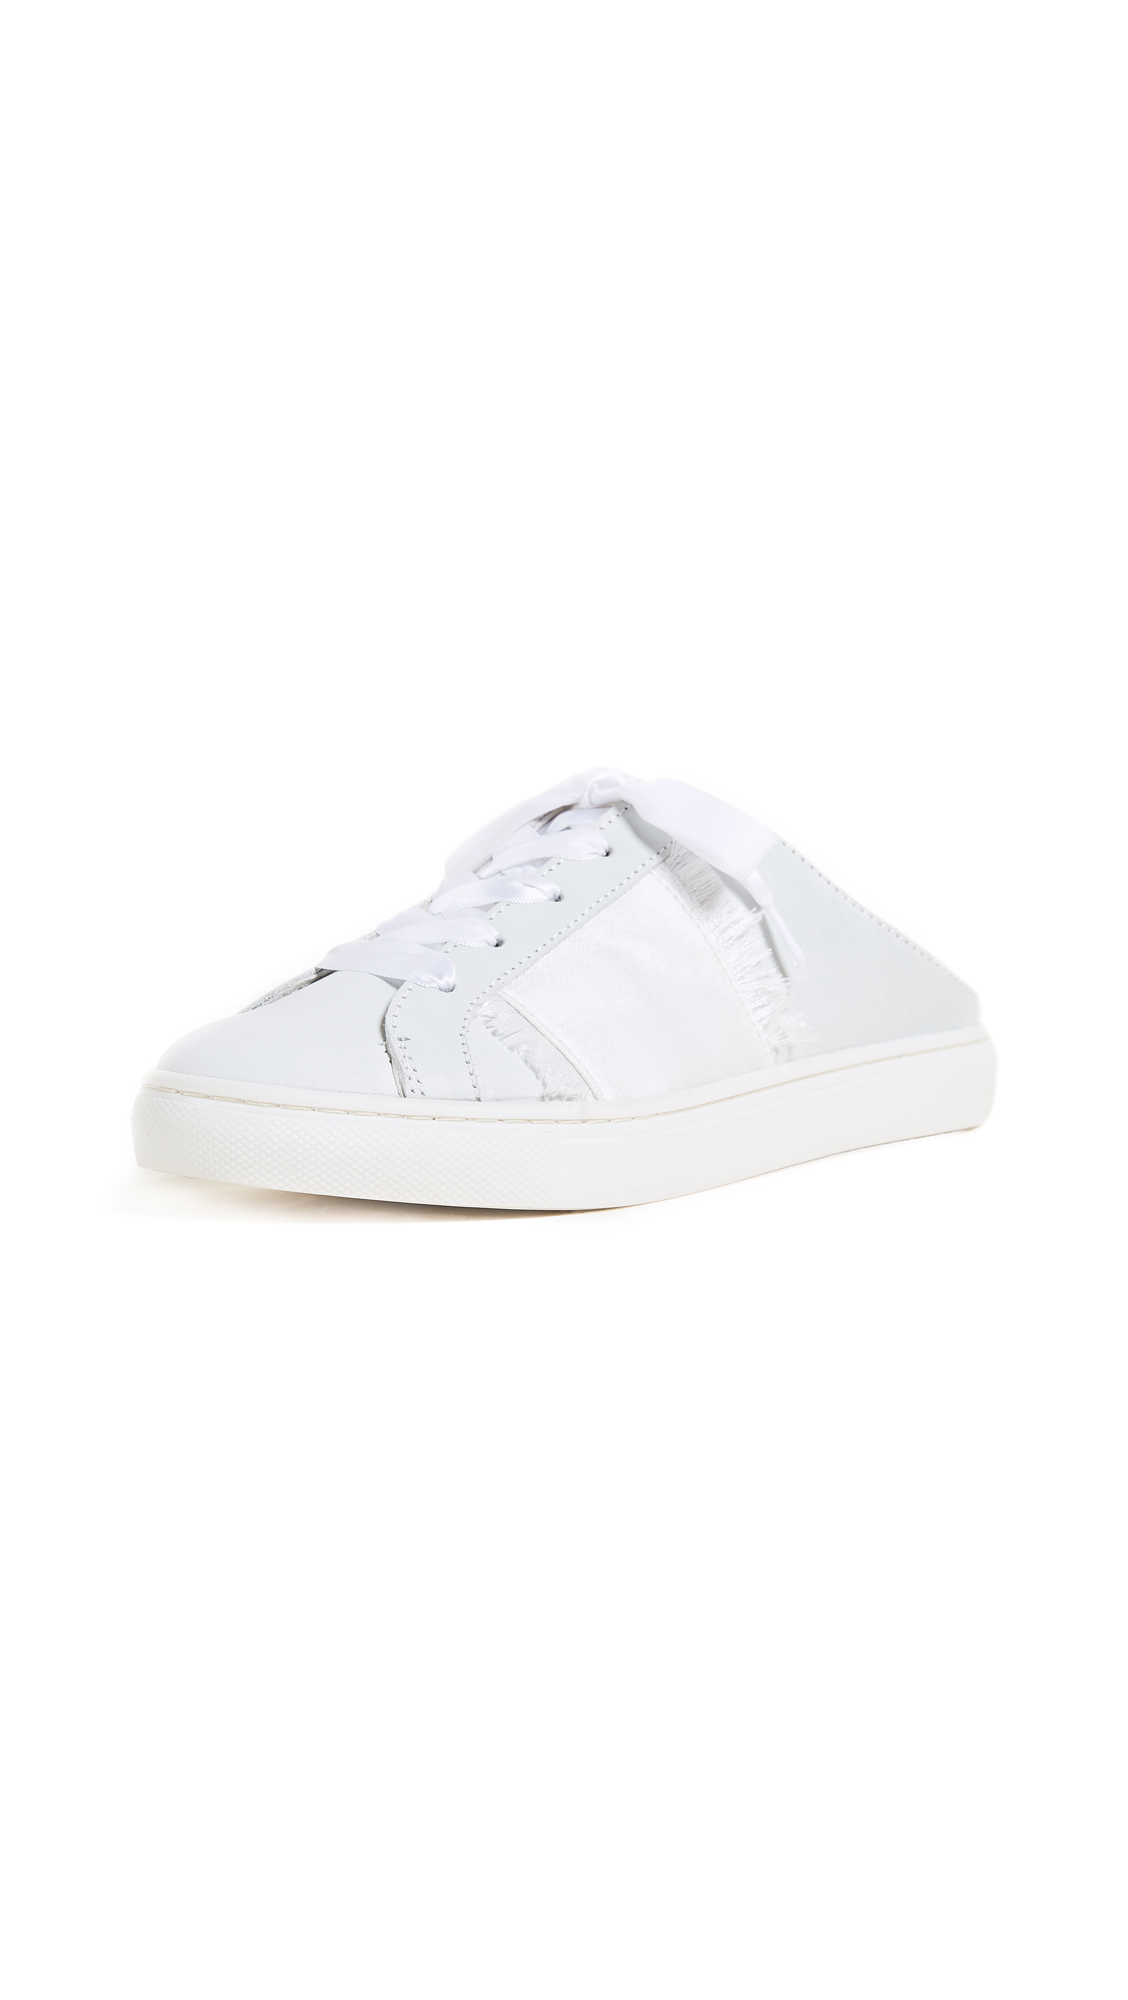 Free People Naples Slip On Sneakers - White